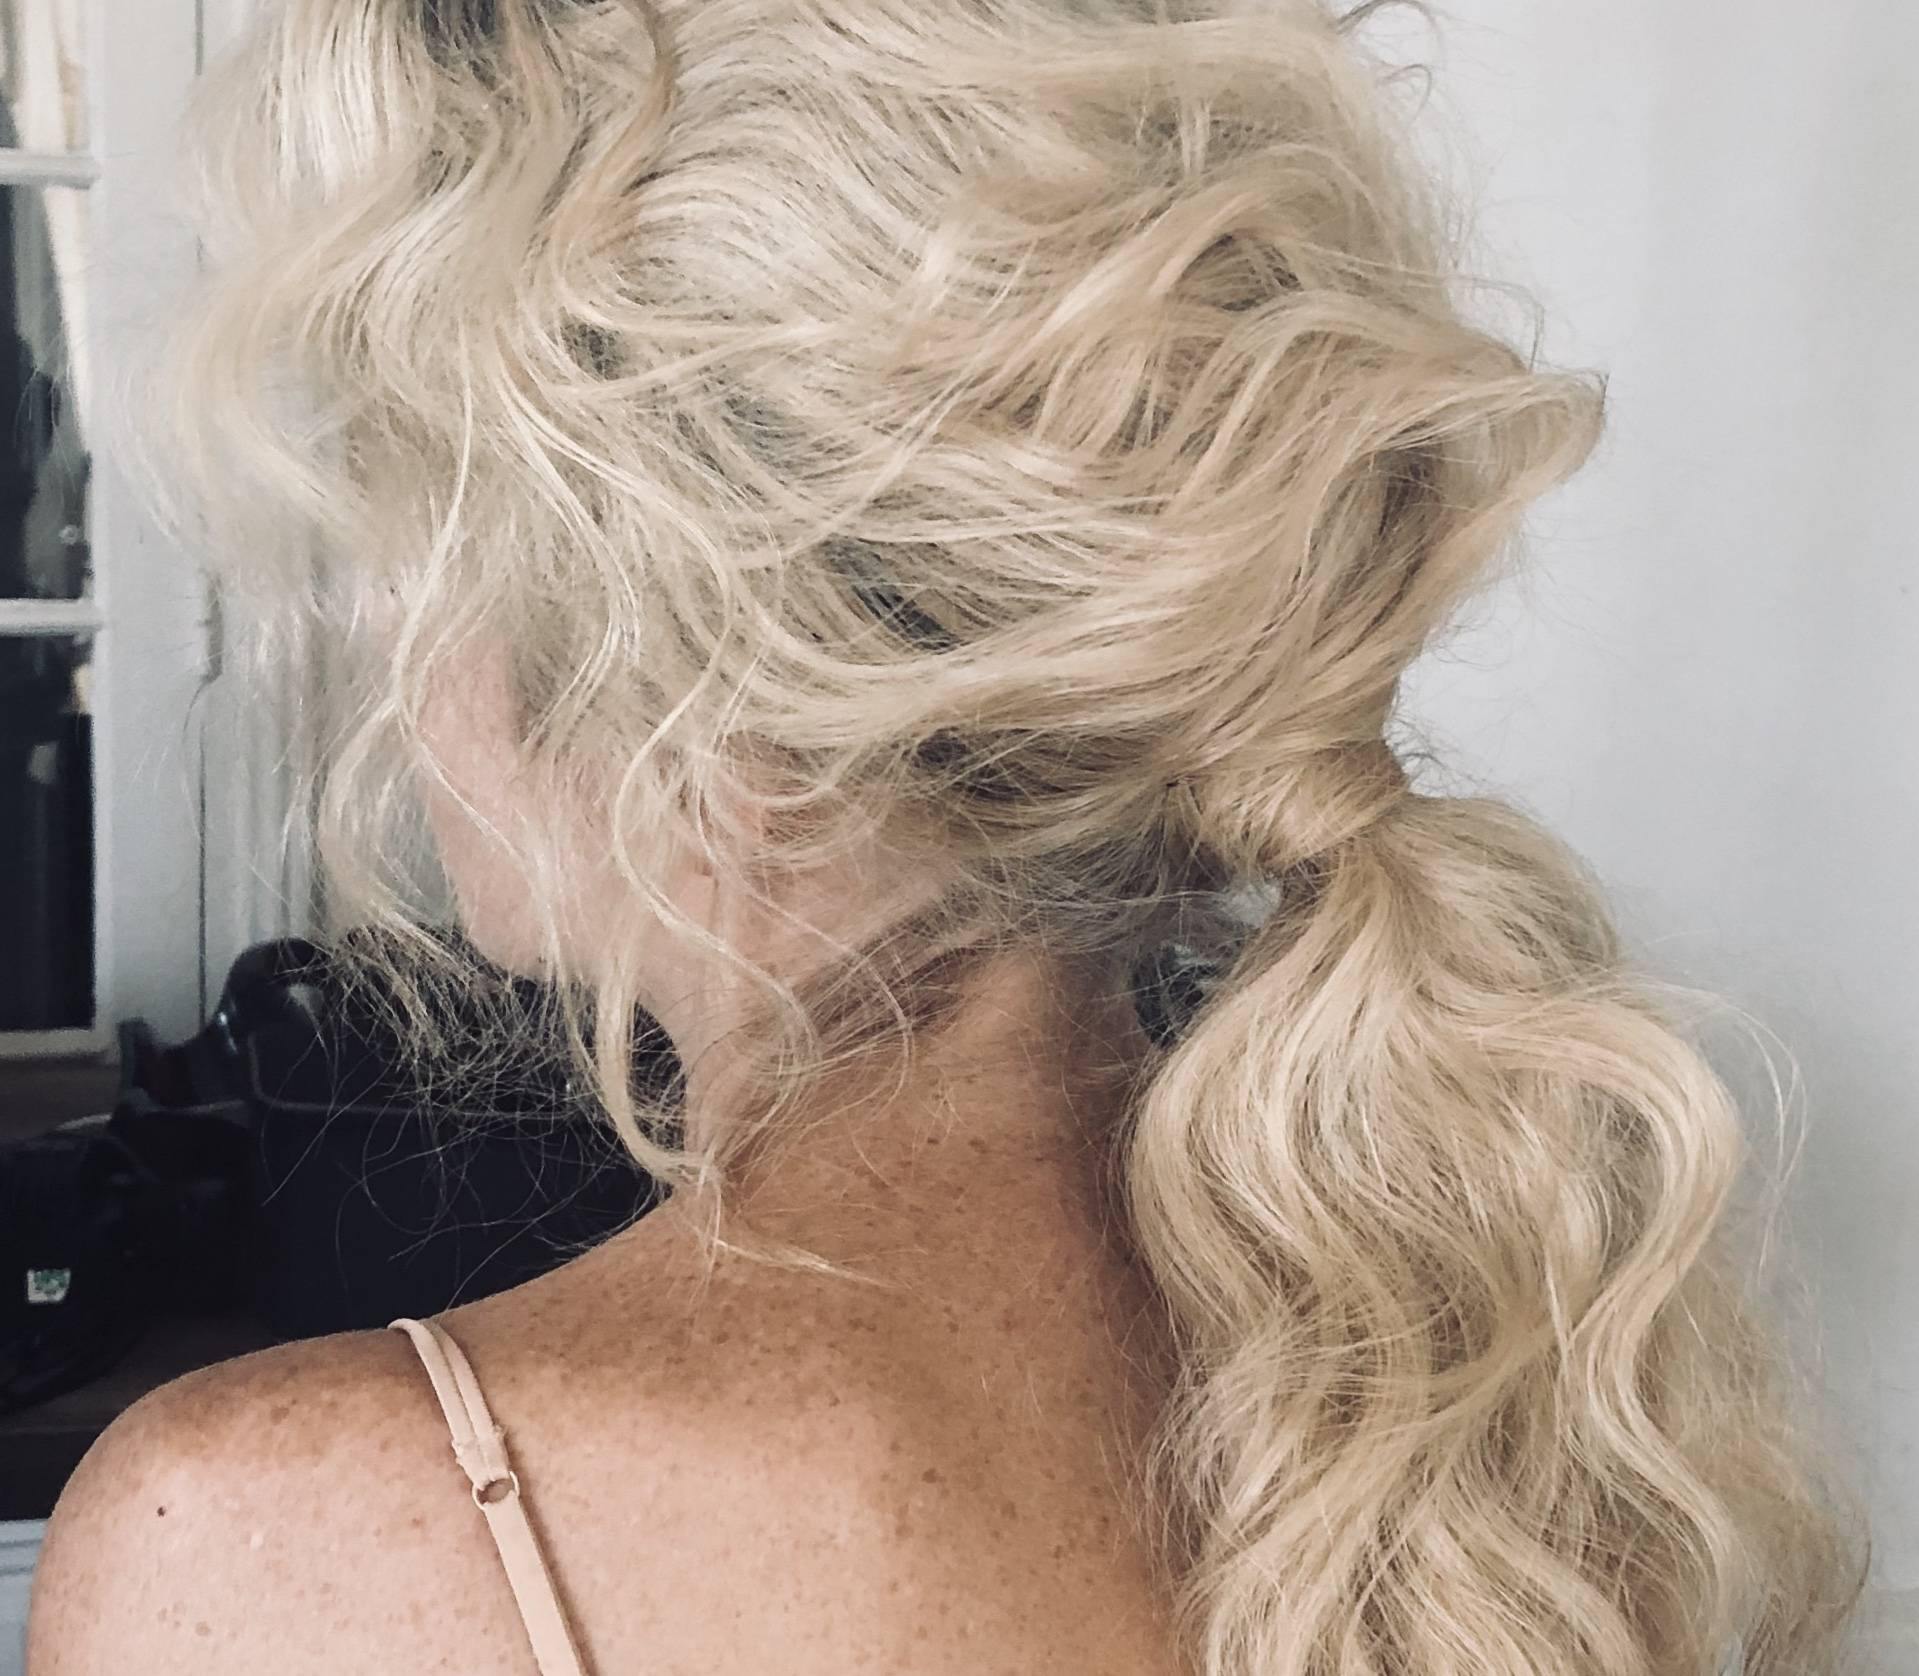 Davines knotted ponytail holiday hair tutorial